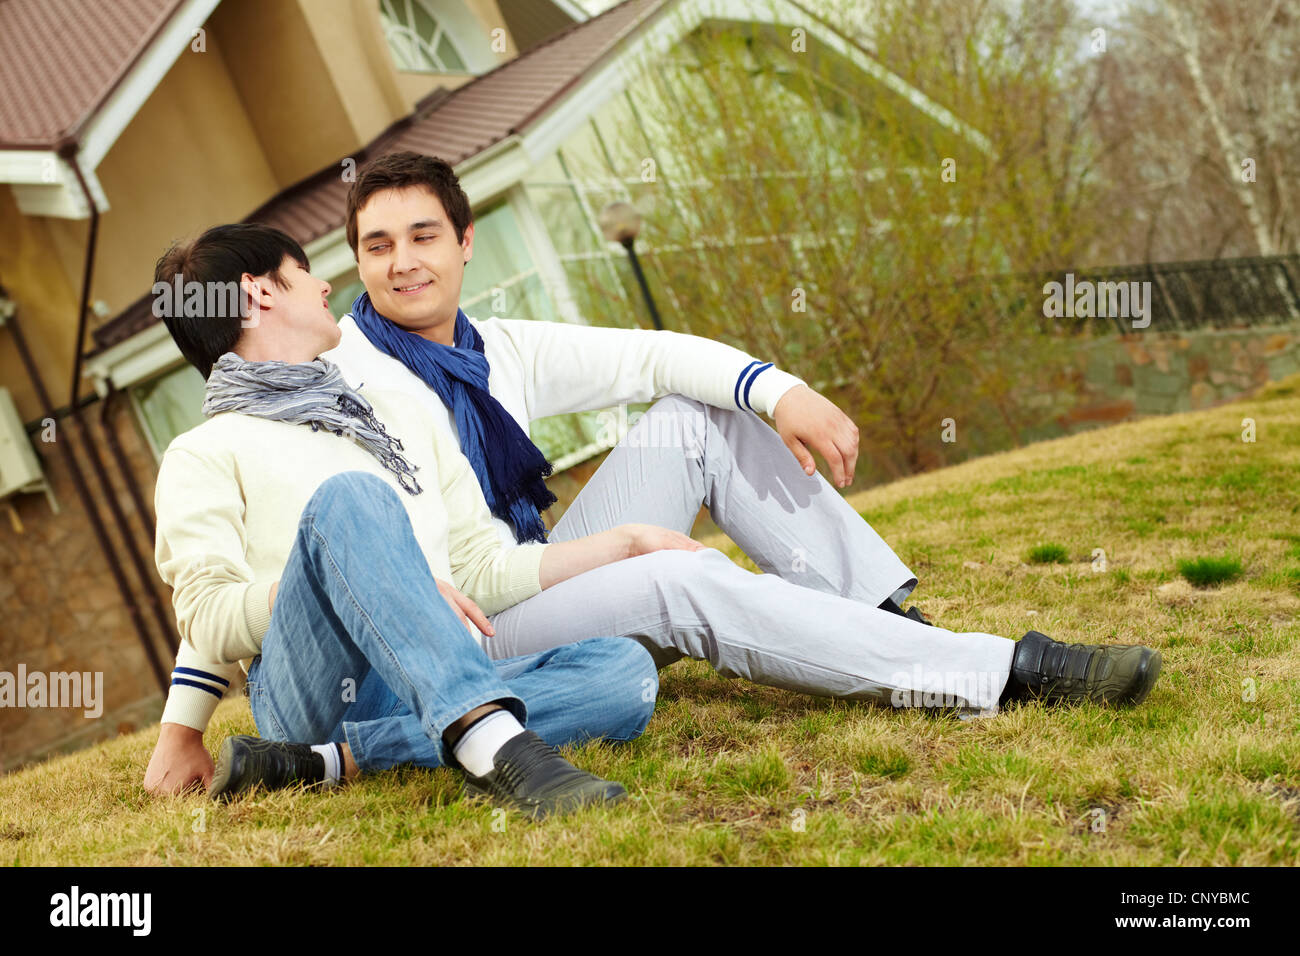 Tilt-up shot of young people looking at each other lovingly sitting on a grassy slope - Stock Image